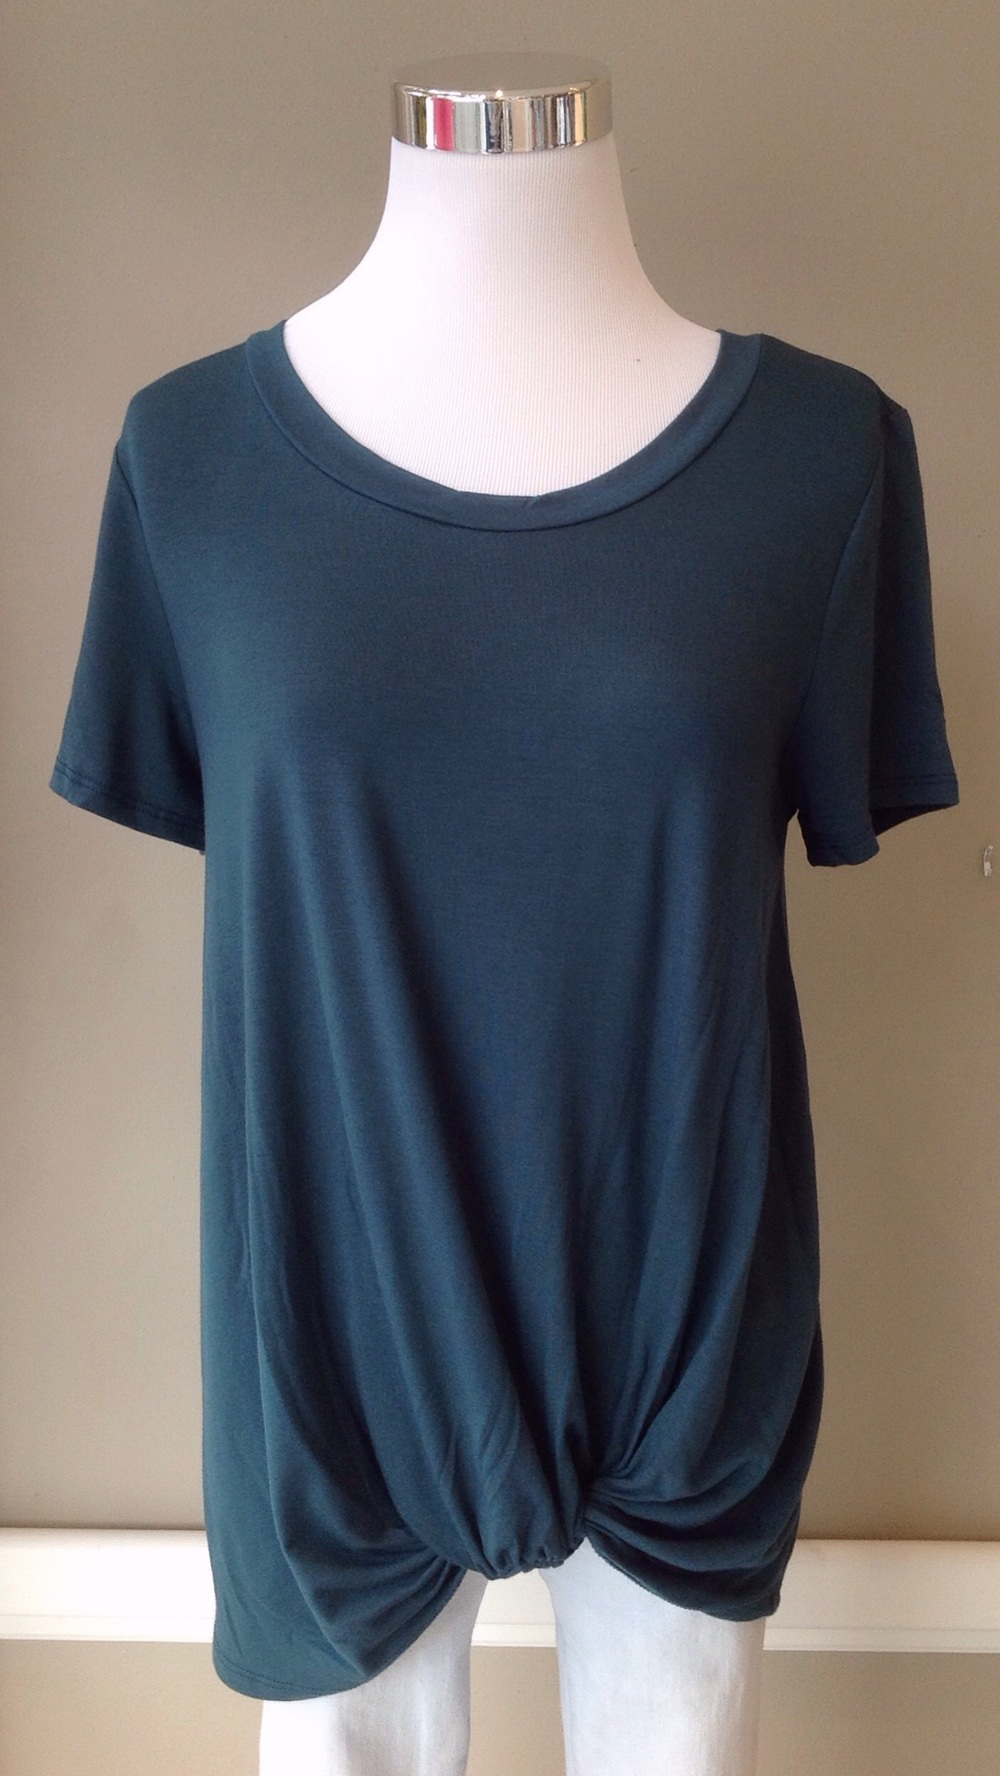 Knit twist tee in hunter green, $28